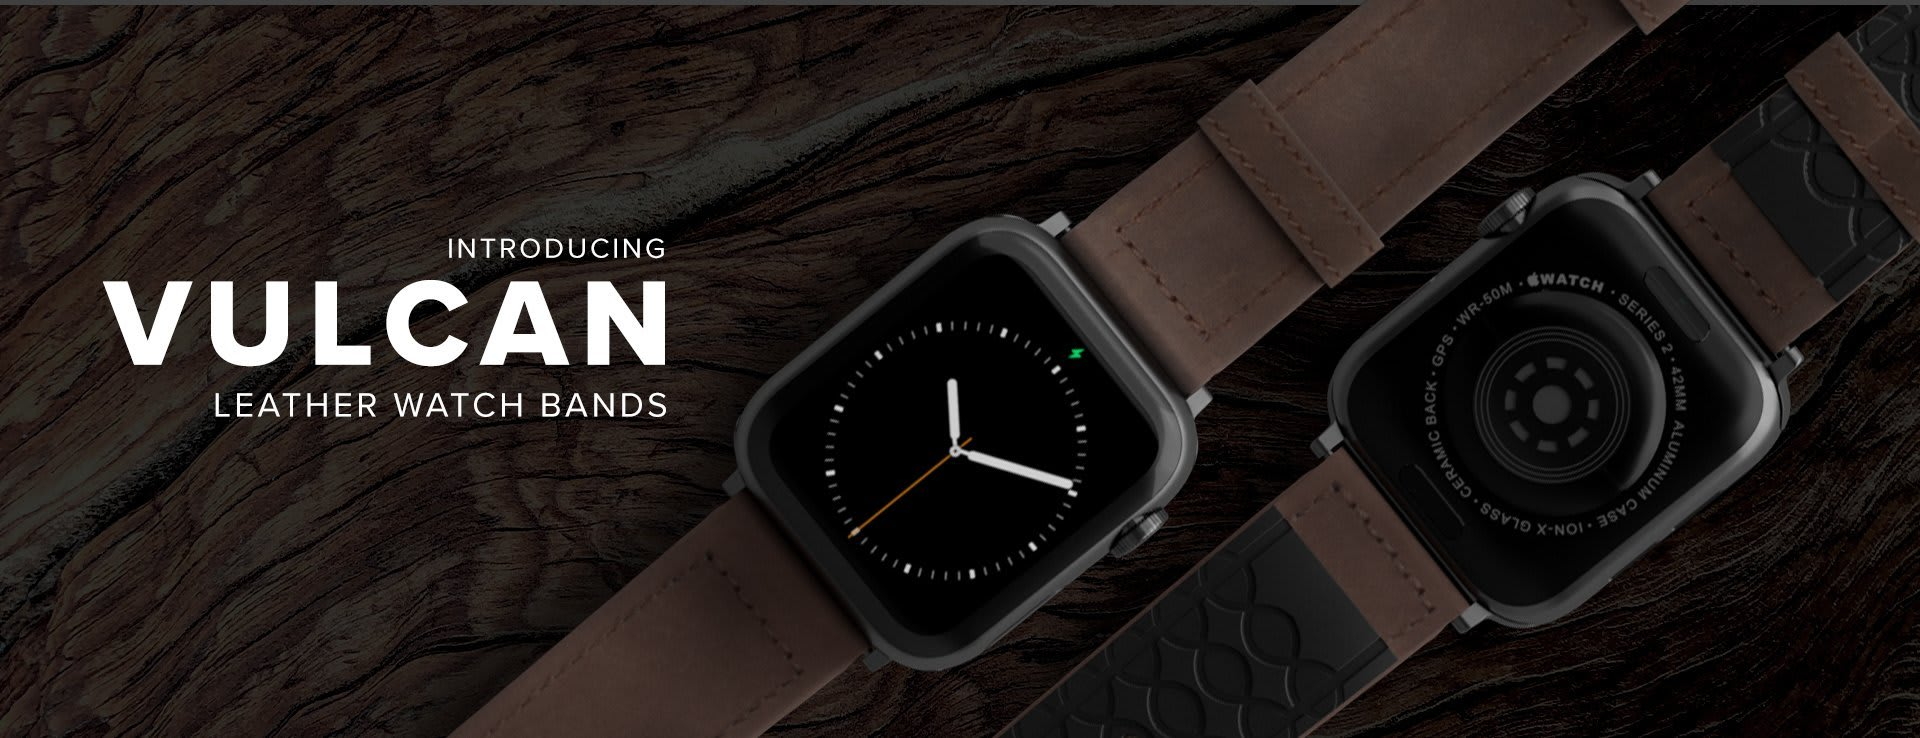 Vulcan Leather Watch Bands, Vulcan Trek laid out on wood background